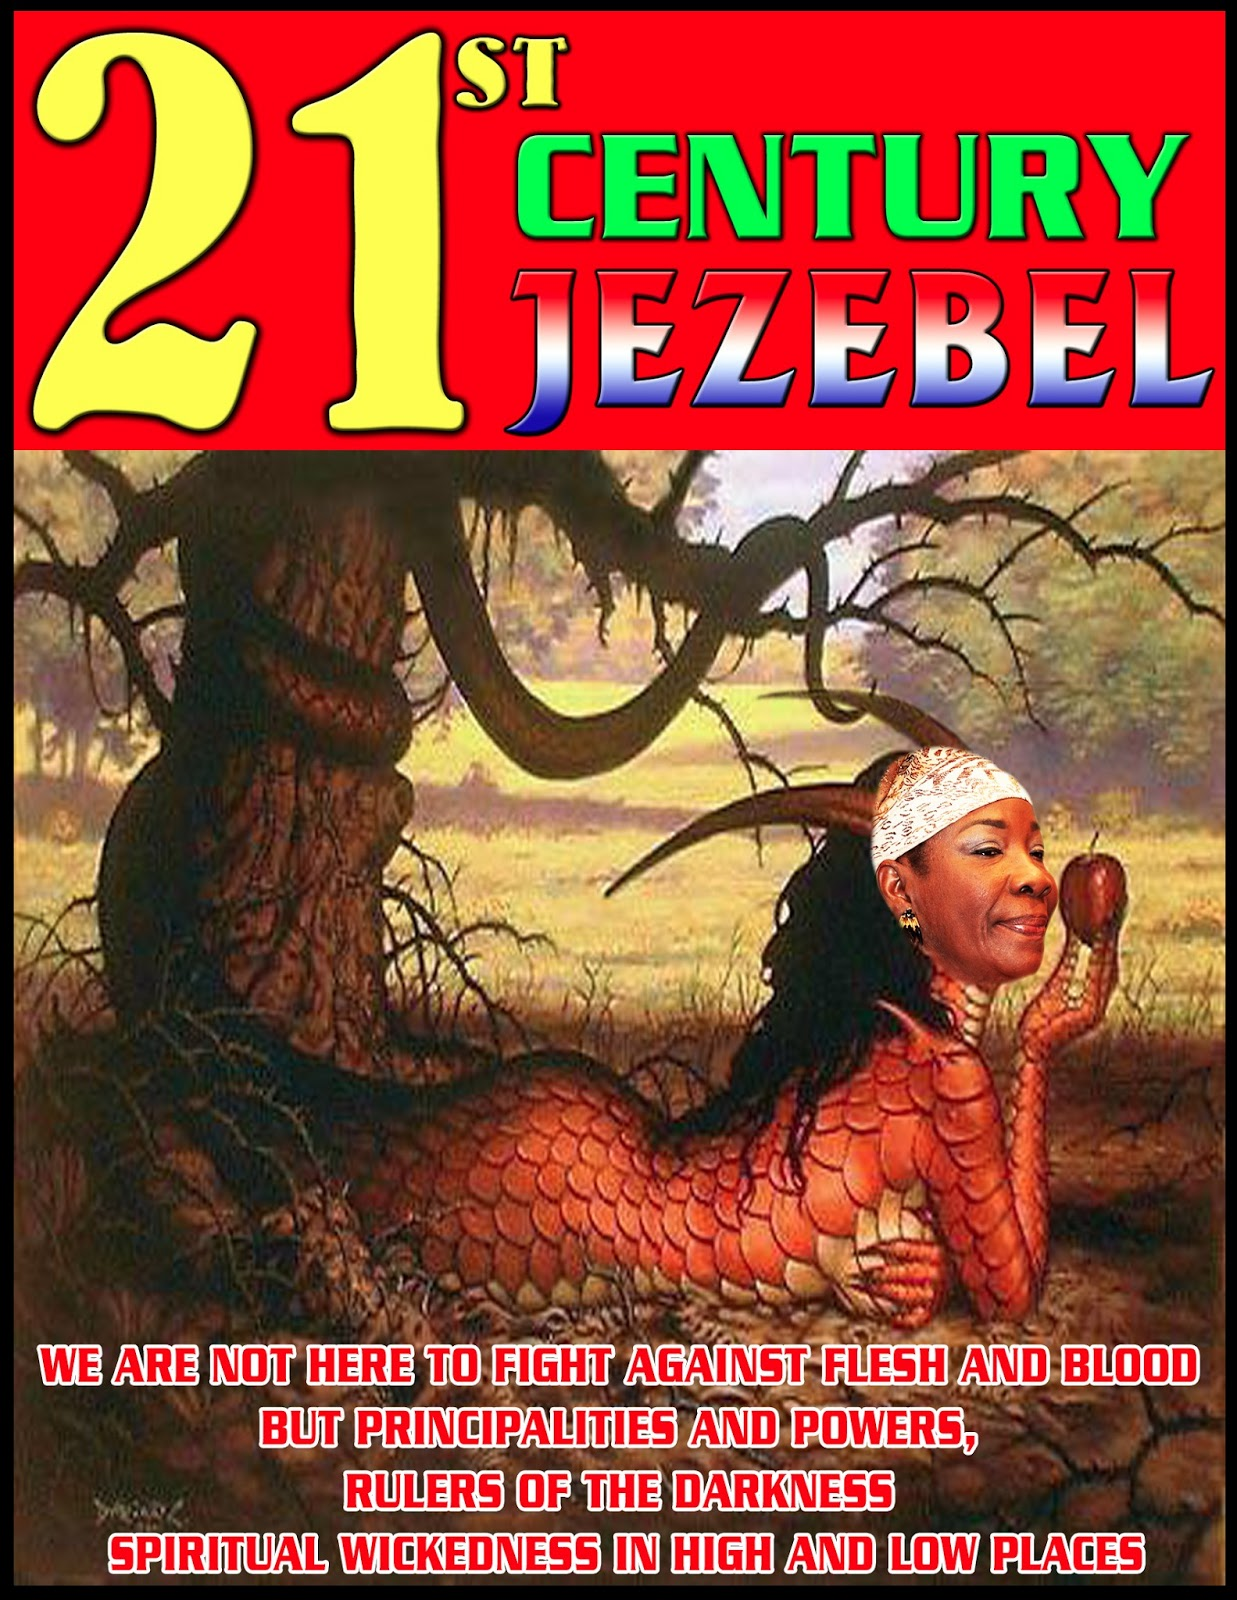 """The name """"Jezebel"""" recurs in the book of Revelation where Jesus says this to His church, """"I have this against you: You tolerate that woman Jezebel, ..."""